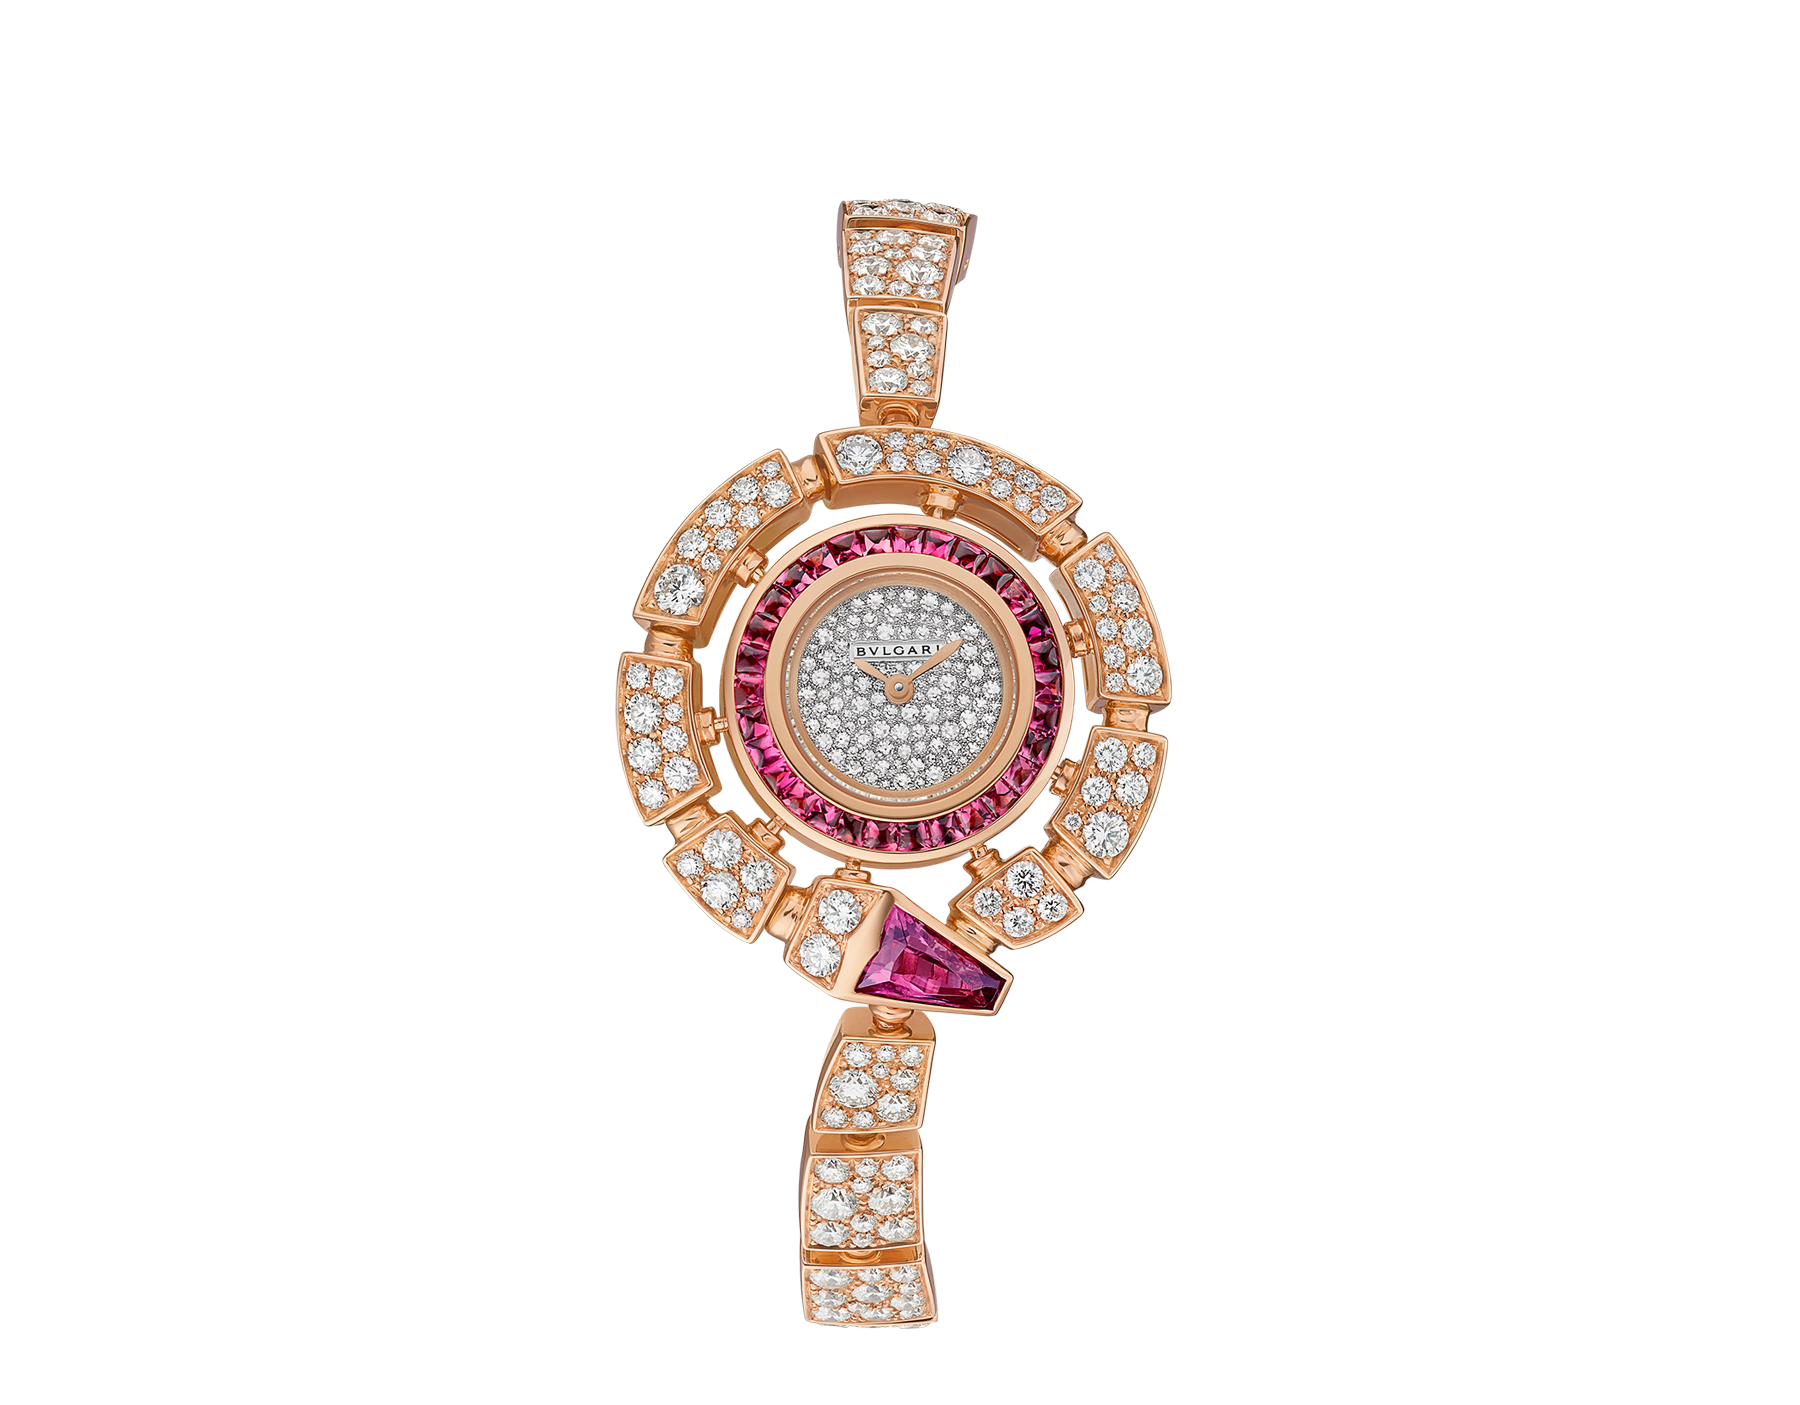 Montre Serpenti Incantati avec boîtier de 30 mm en or rose 18 K serti de diamants taille brillant et rubellites, cadran pavé diamants en serti « neige », bracelet en or rose 18 K serti de diamants taille brillant. 102536 image 1